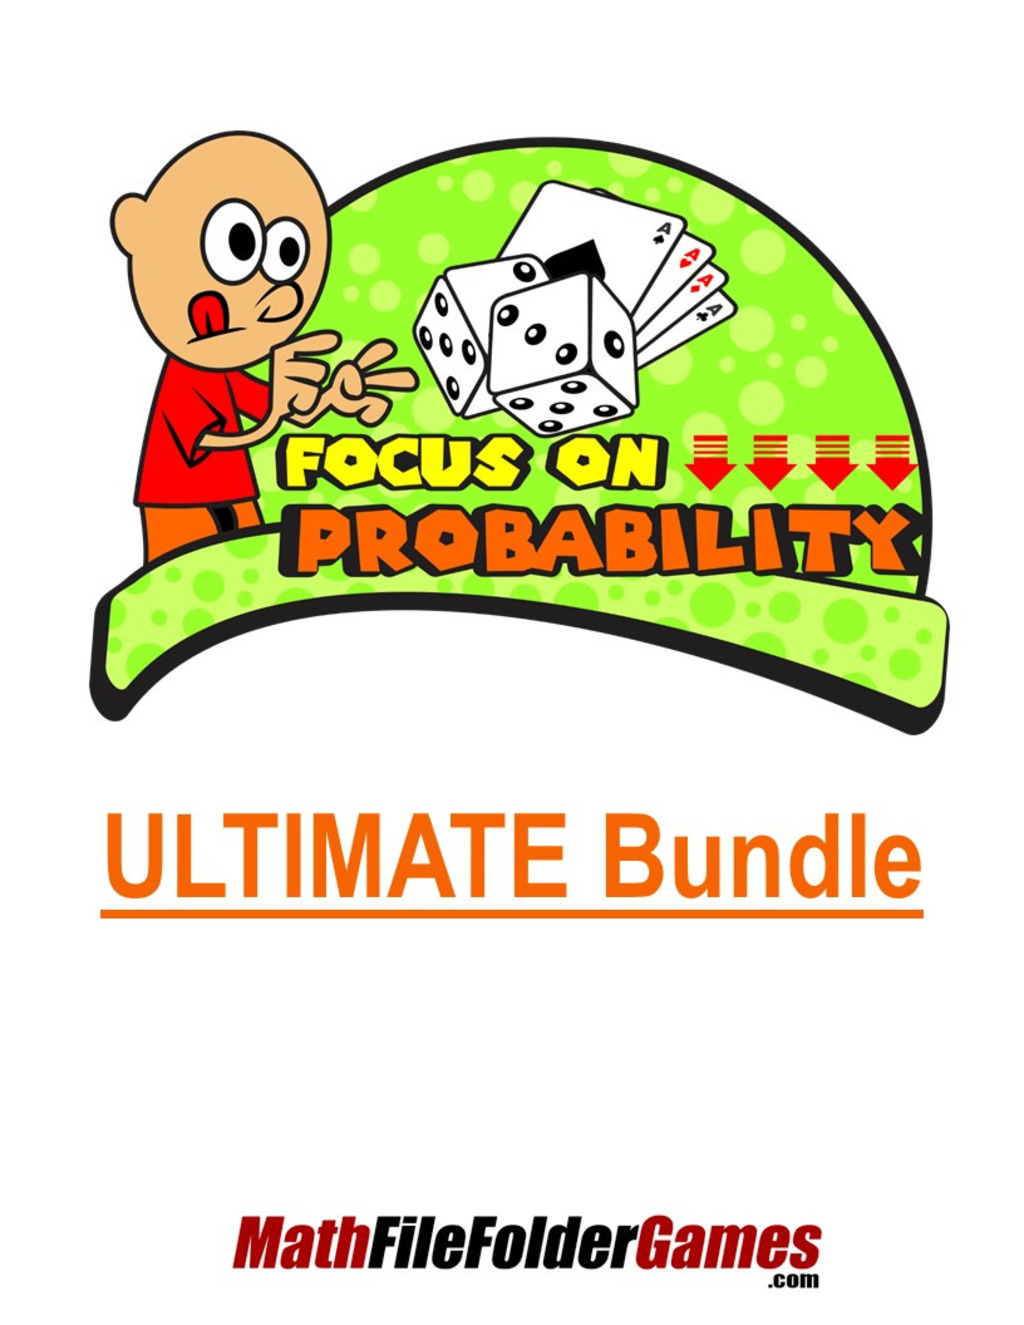 Ultimate Focus On Probability